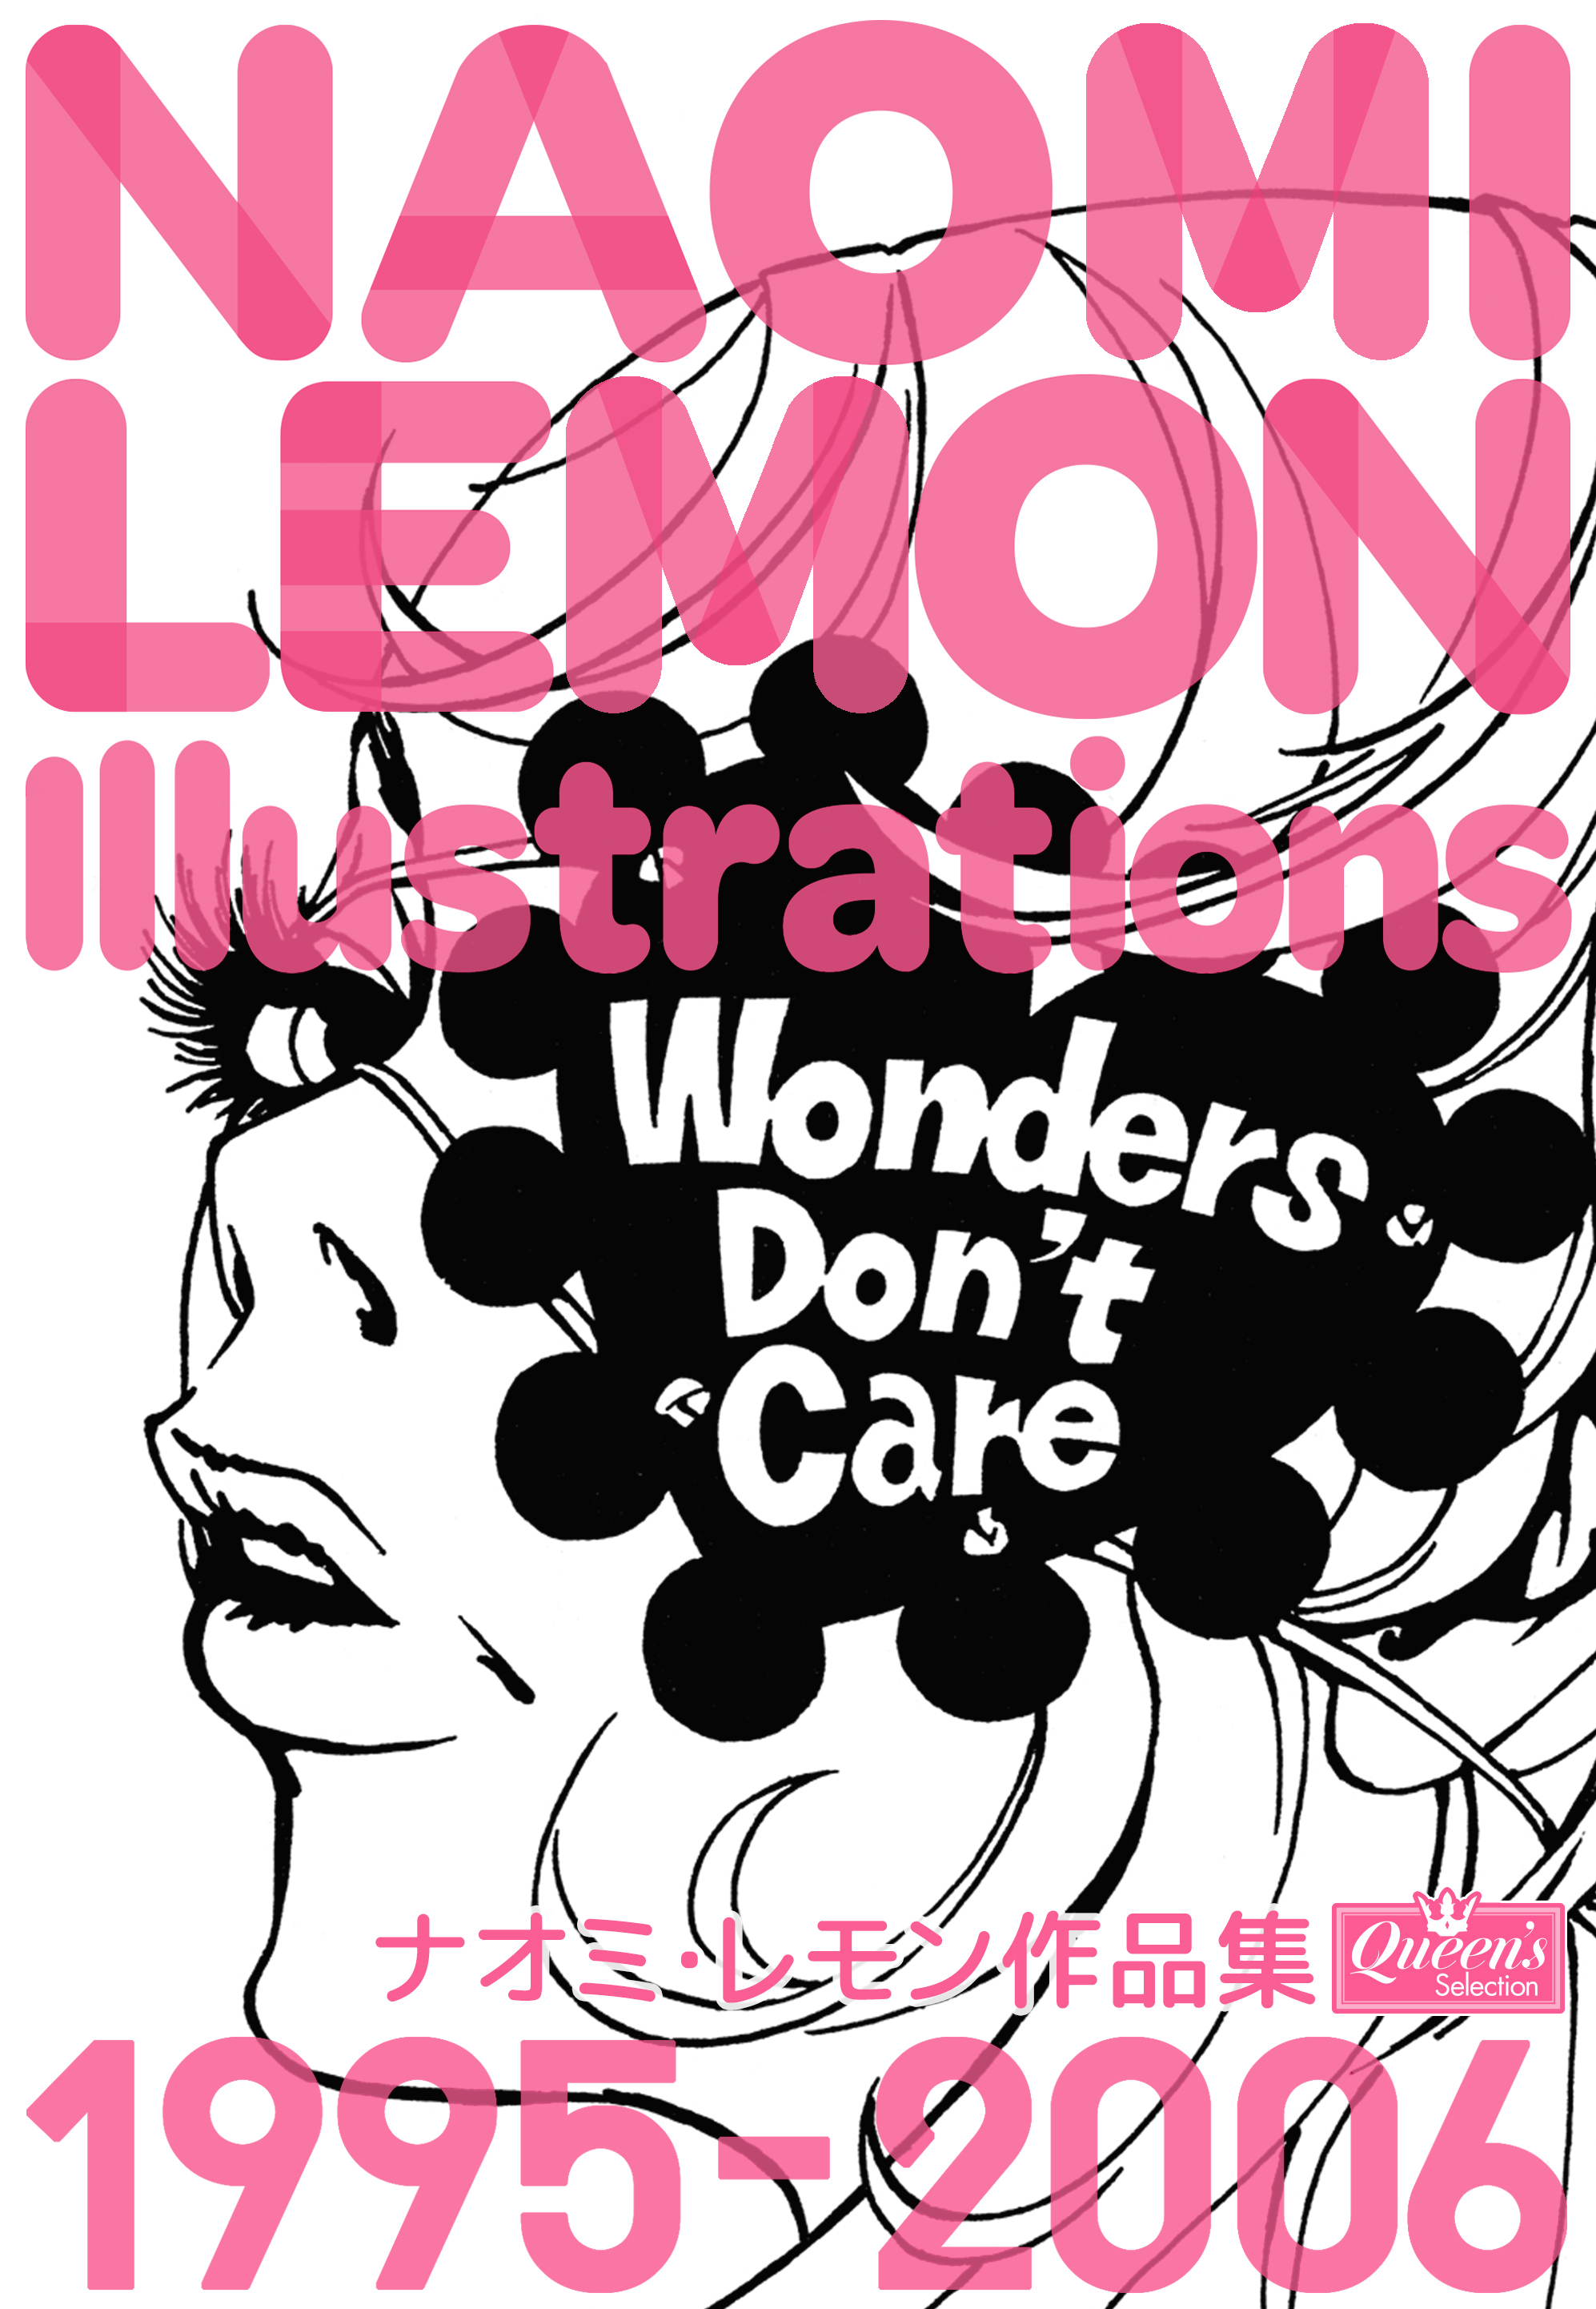 ナオミ・レモン作品集『Wonders Don't Care』電子版 - NAOMI LEMON ILLUSTRATIONS「Wonders Don't Care」e-book editionAmazonで買う